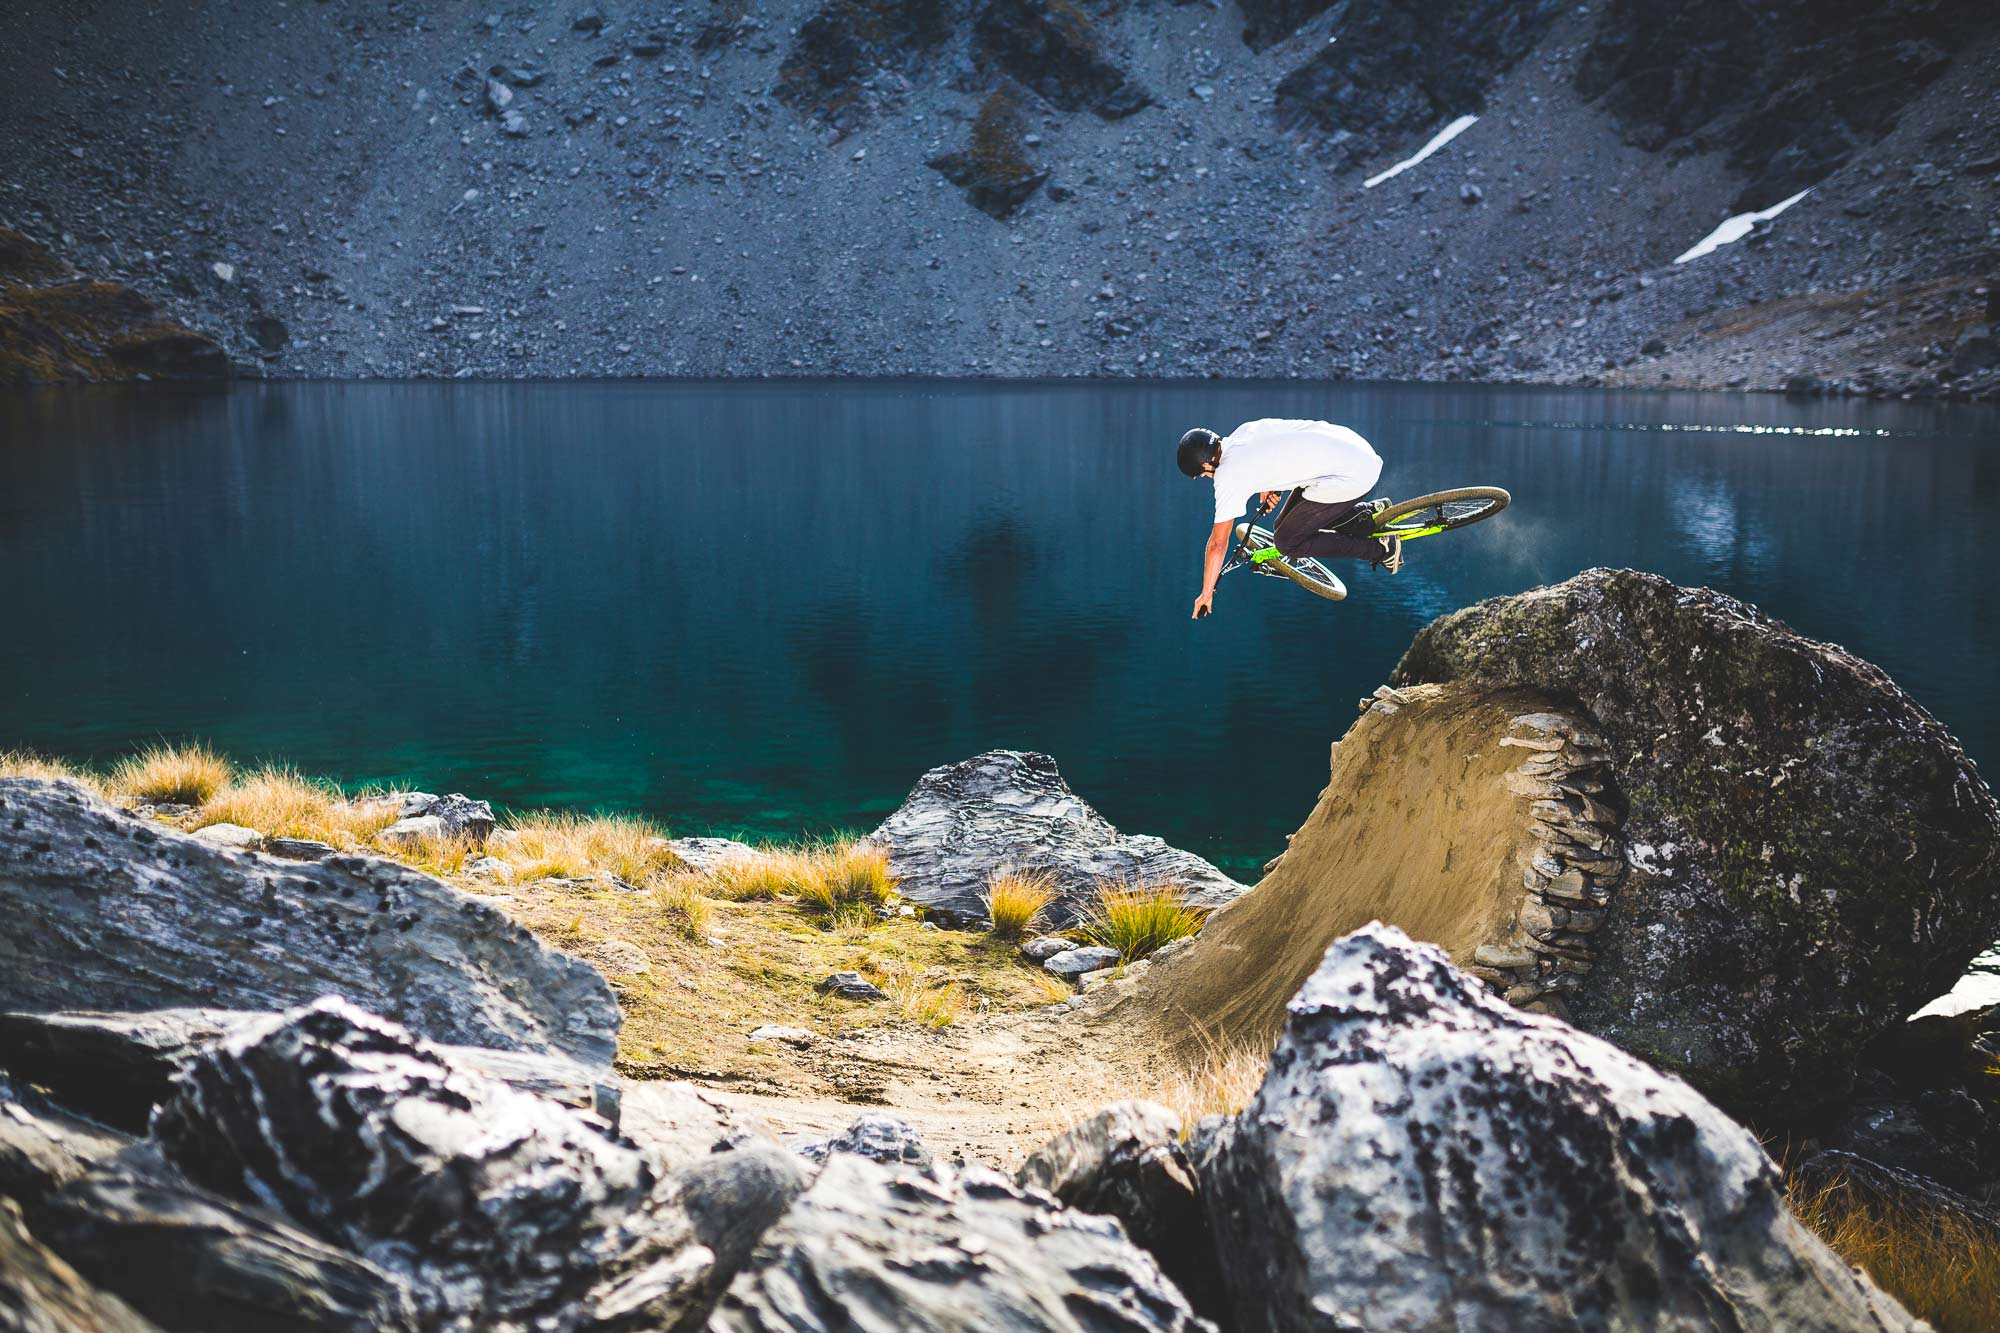 Mountain Bike rider Nick Dethridge jumping near alpine lake in Queenstown